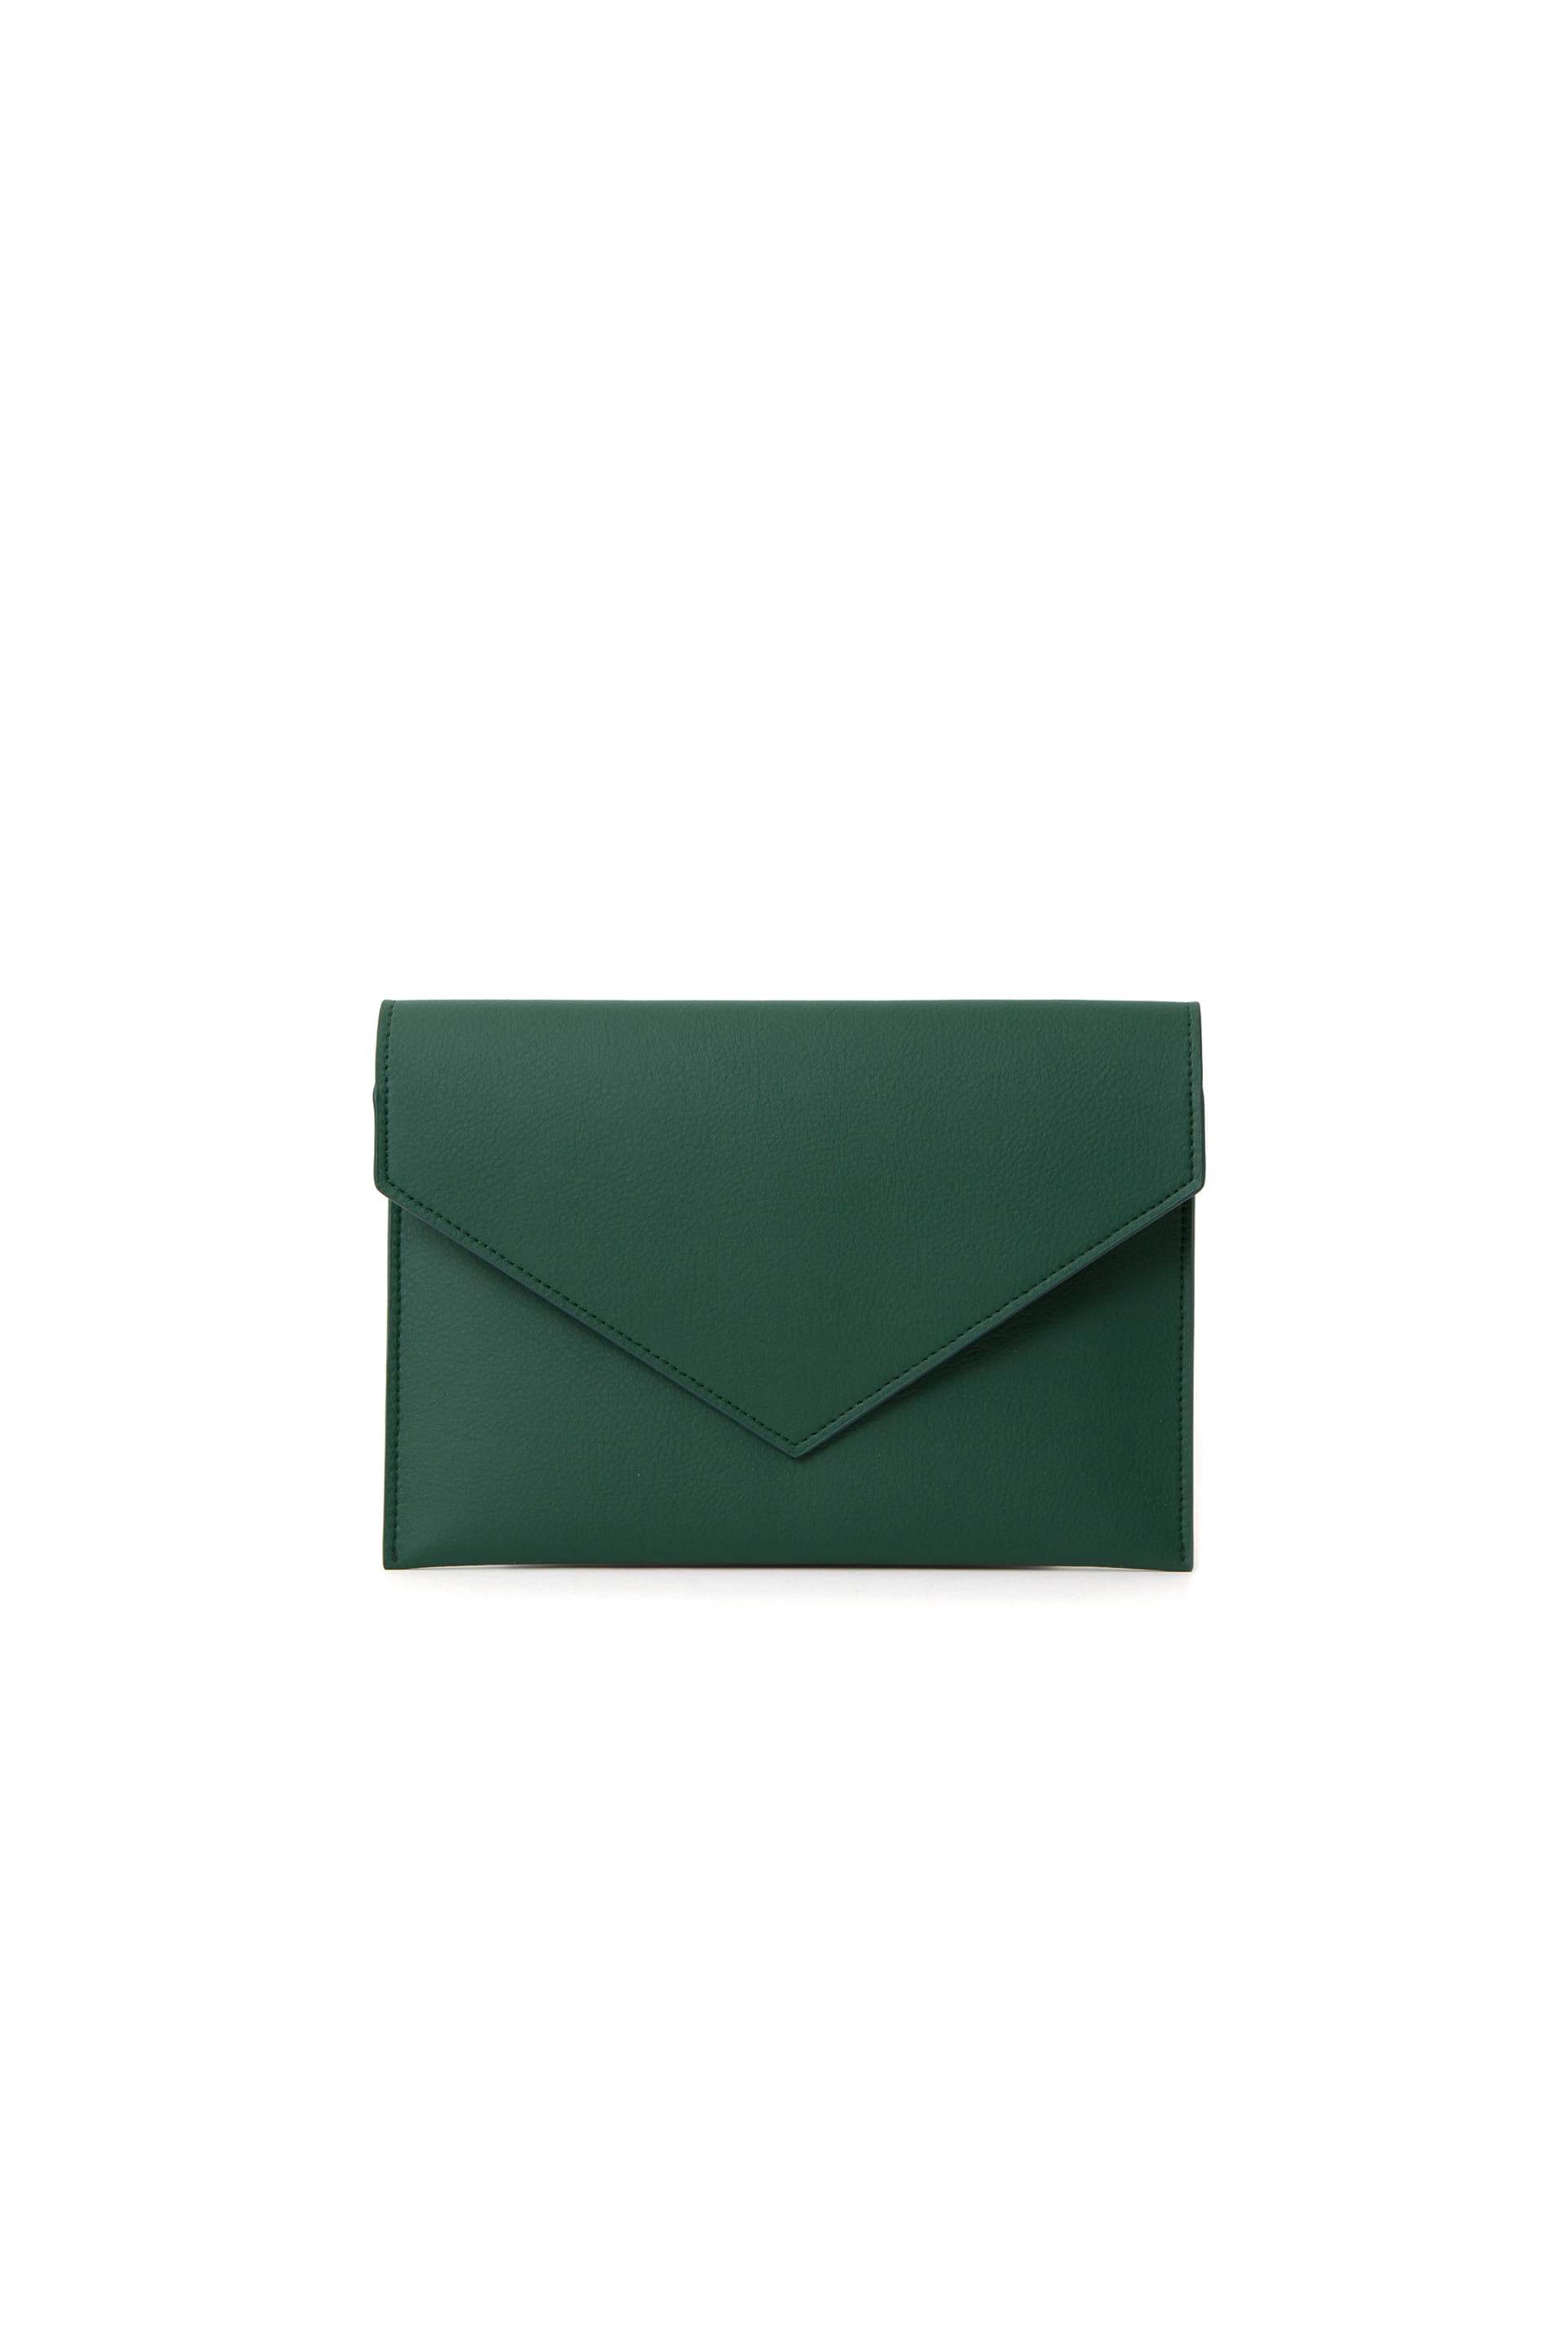 COSMETIC CLUTCH 12 Deep Green